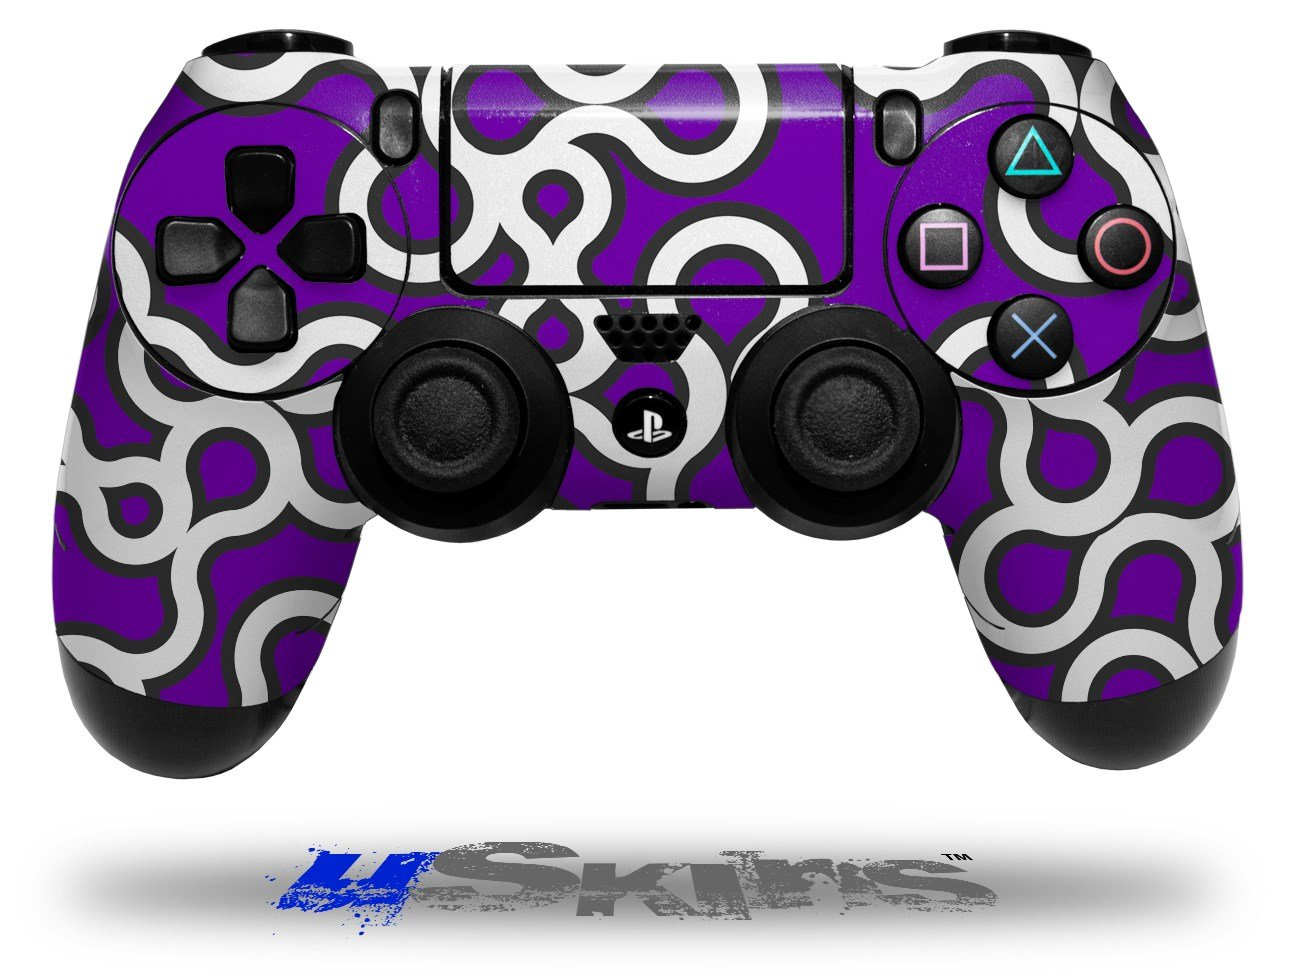 Locknodes 03 Purple - Decal Style Wrap Skin fits Sony PS4 Dualshock Controller 6pcs lot soft thumb grips thumbstick joystick high enhancements cover caps skin fit for sony play station 4 ps4 ps3 xbox 360